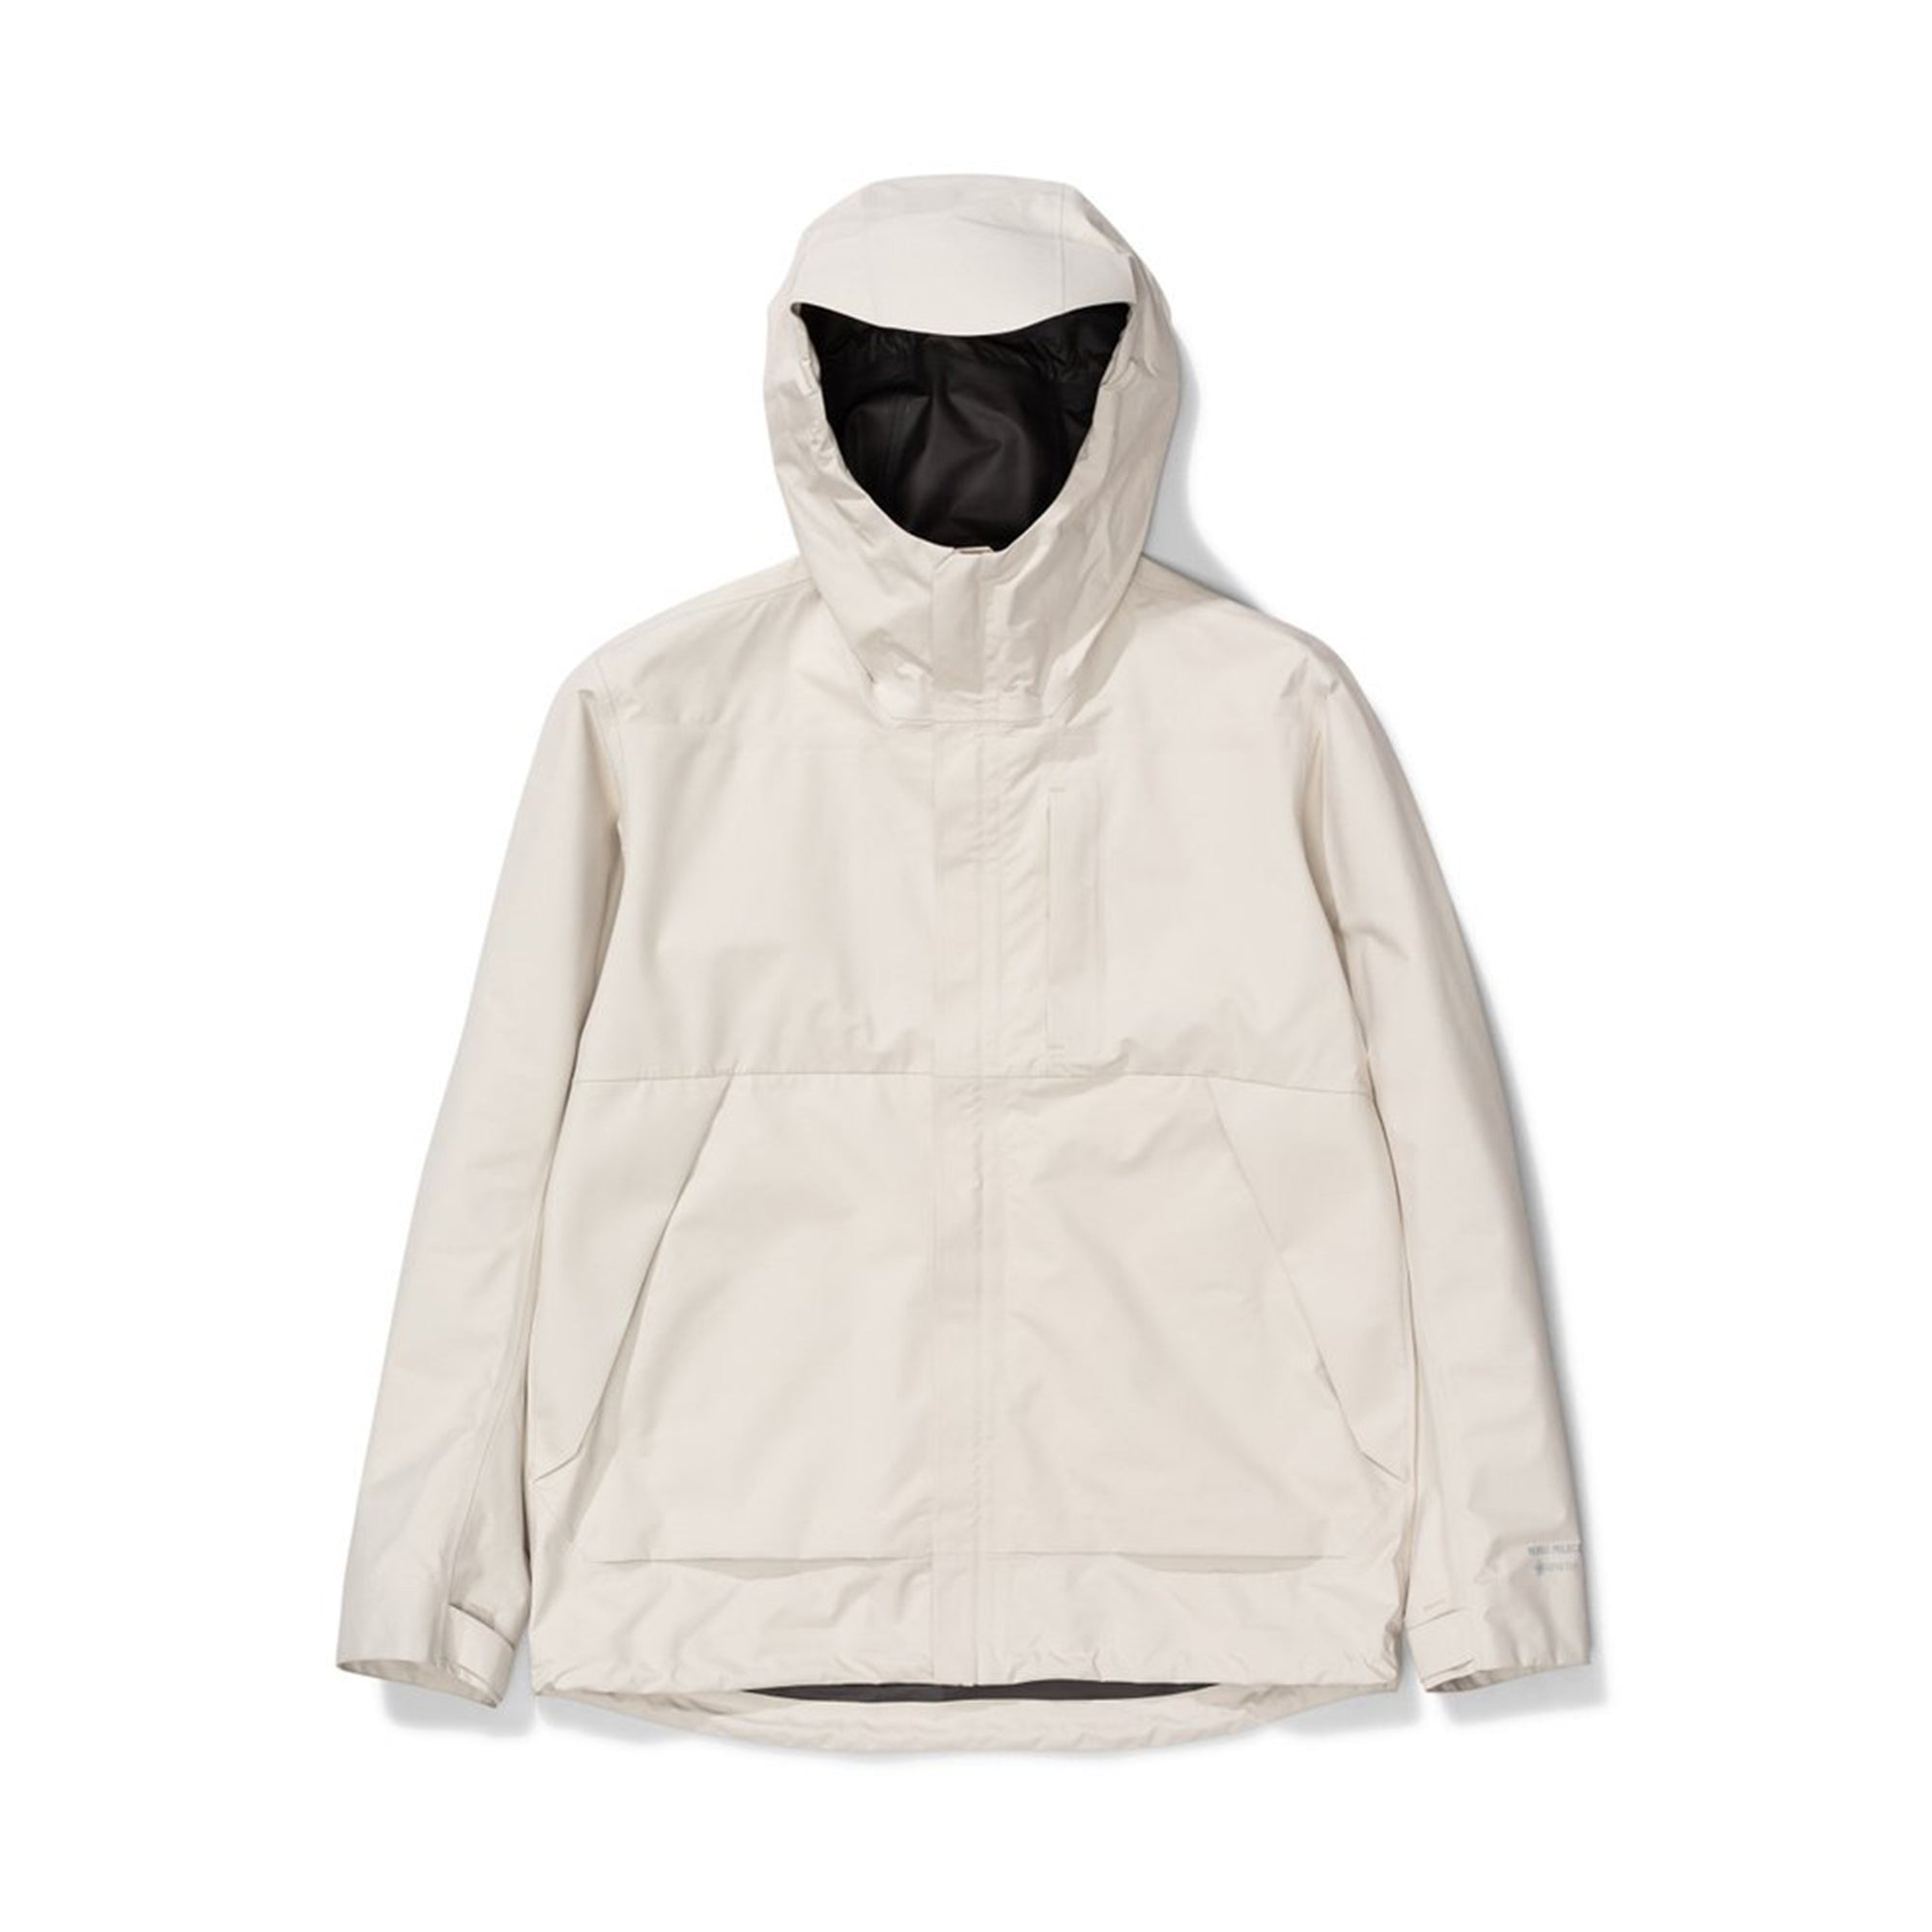 Norse Projects Fyn Shell Gore Tex 3.0: Kit White - The Union Project